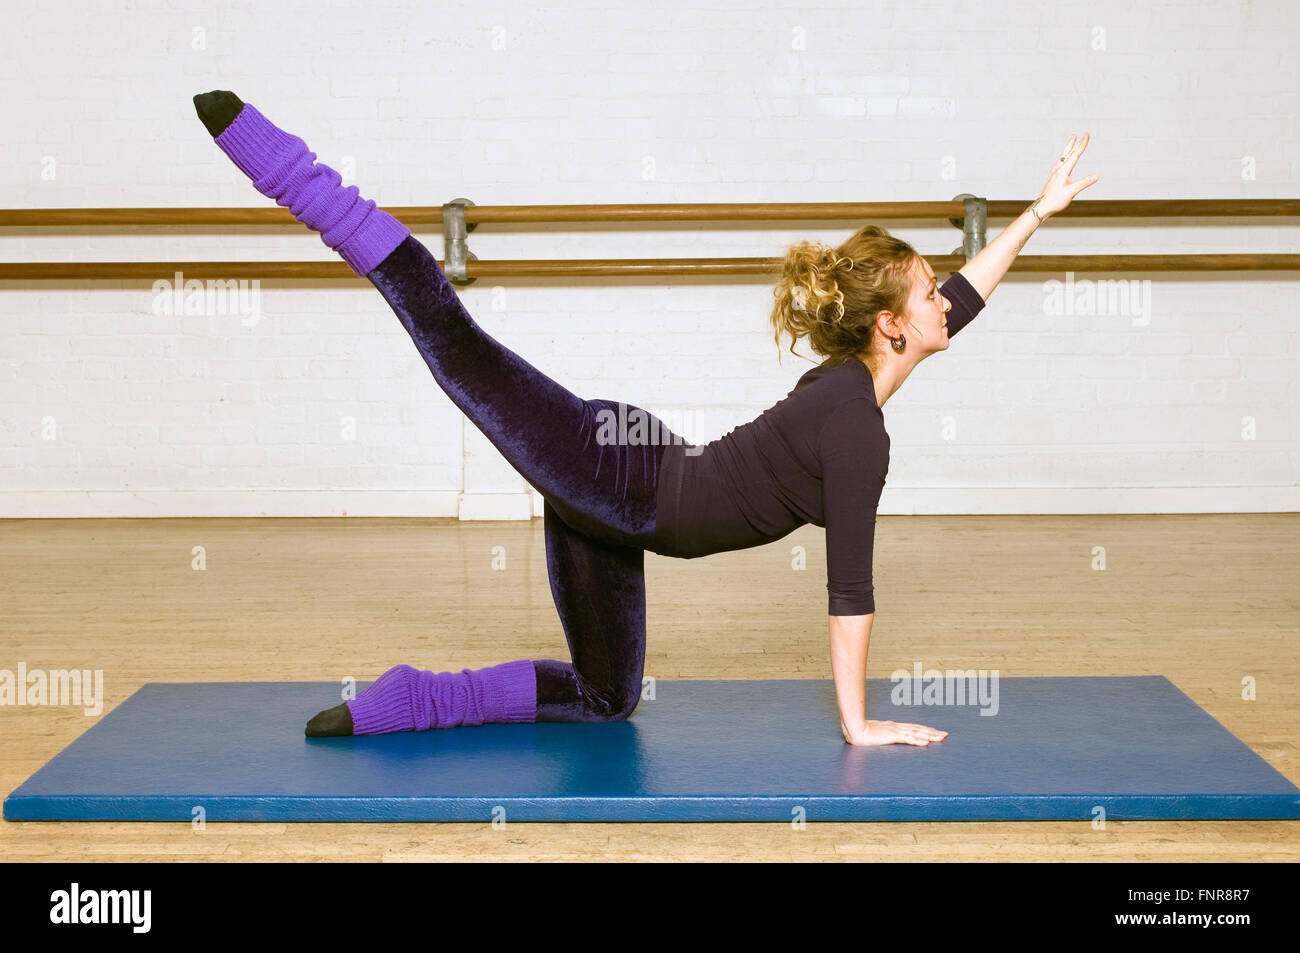 Pilate's Arabesque routine being practiced in fitness center. - Stock Image